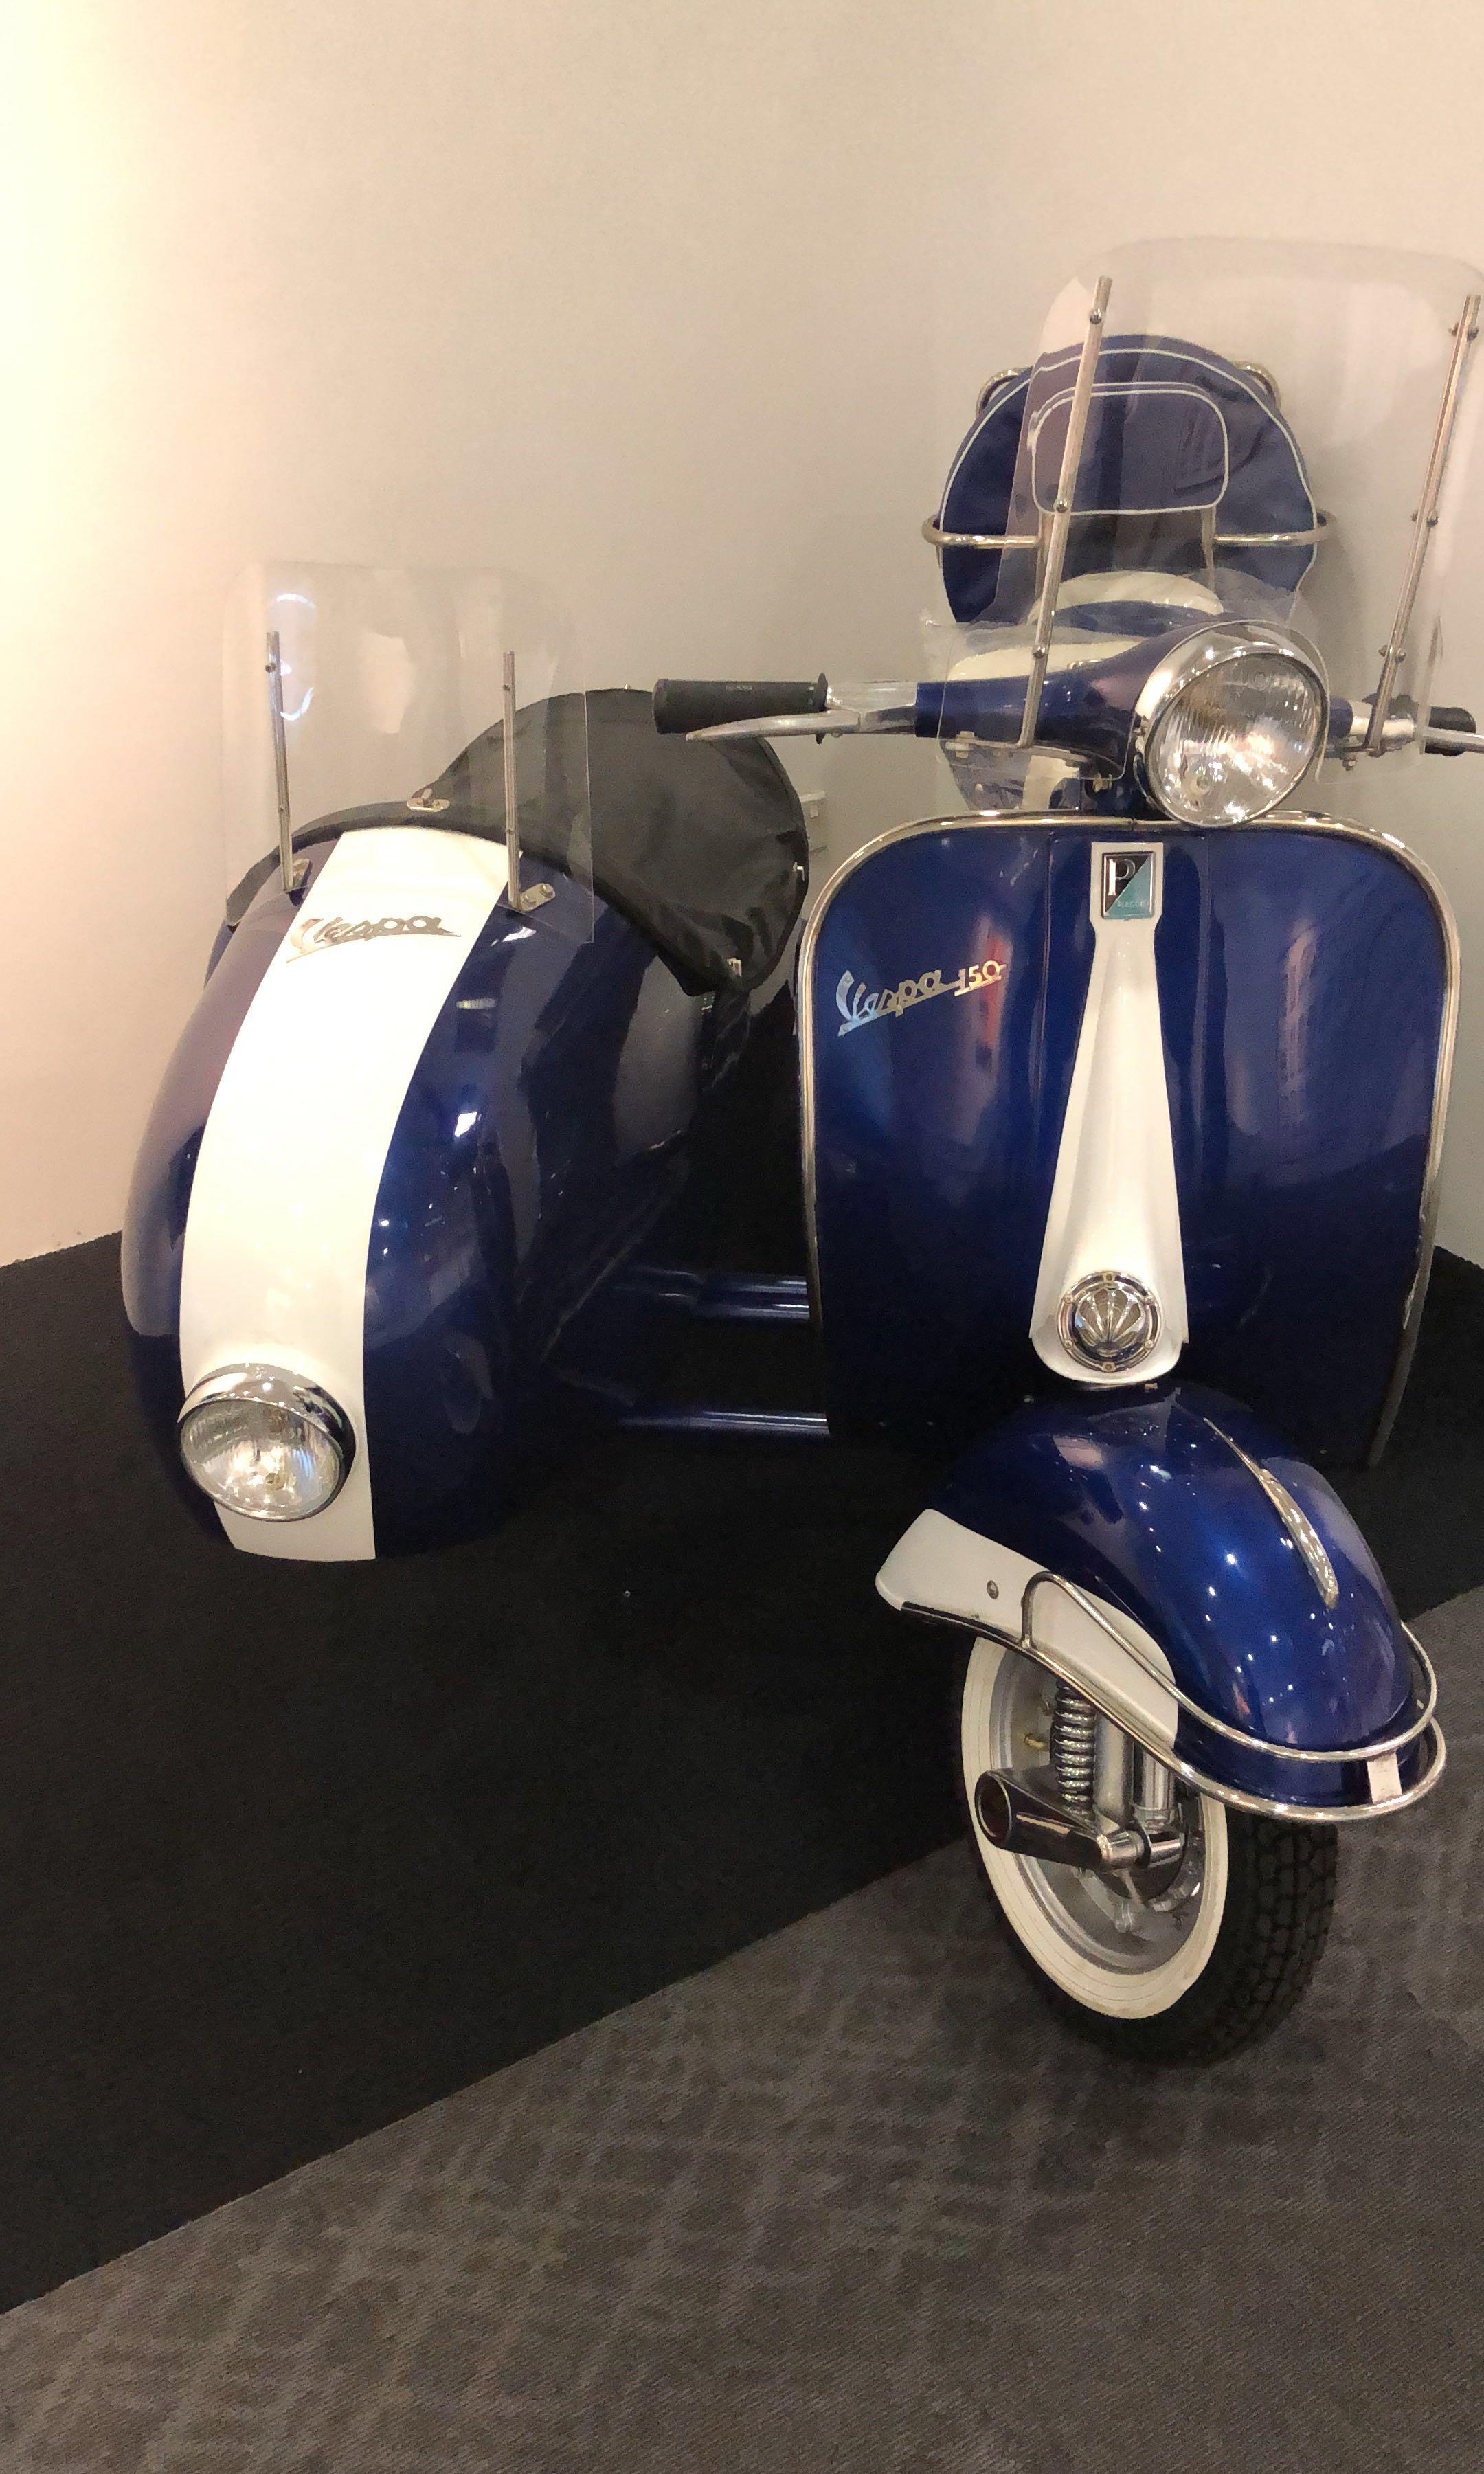 Vintage Vespa (for display only) brand new unit